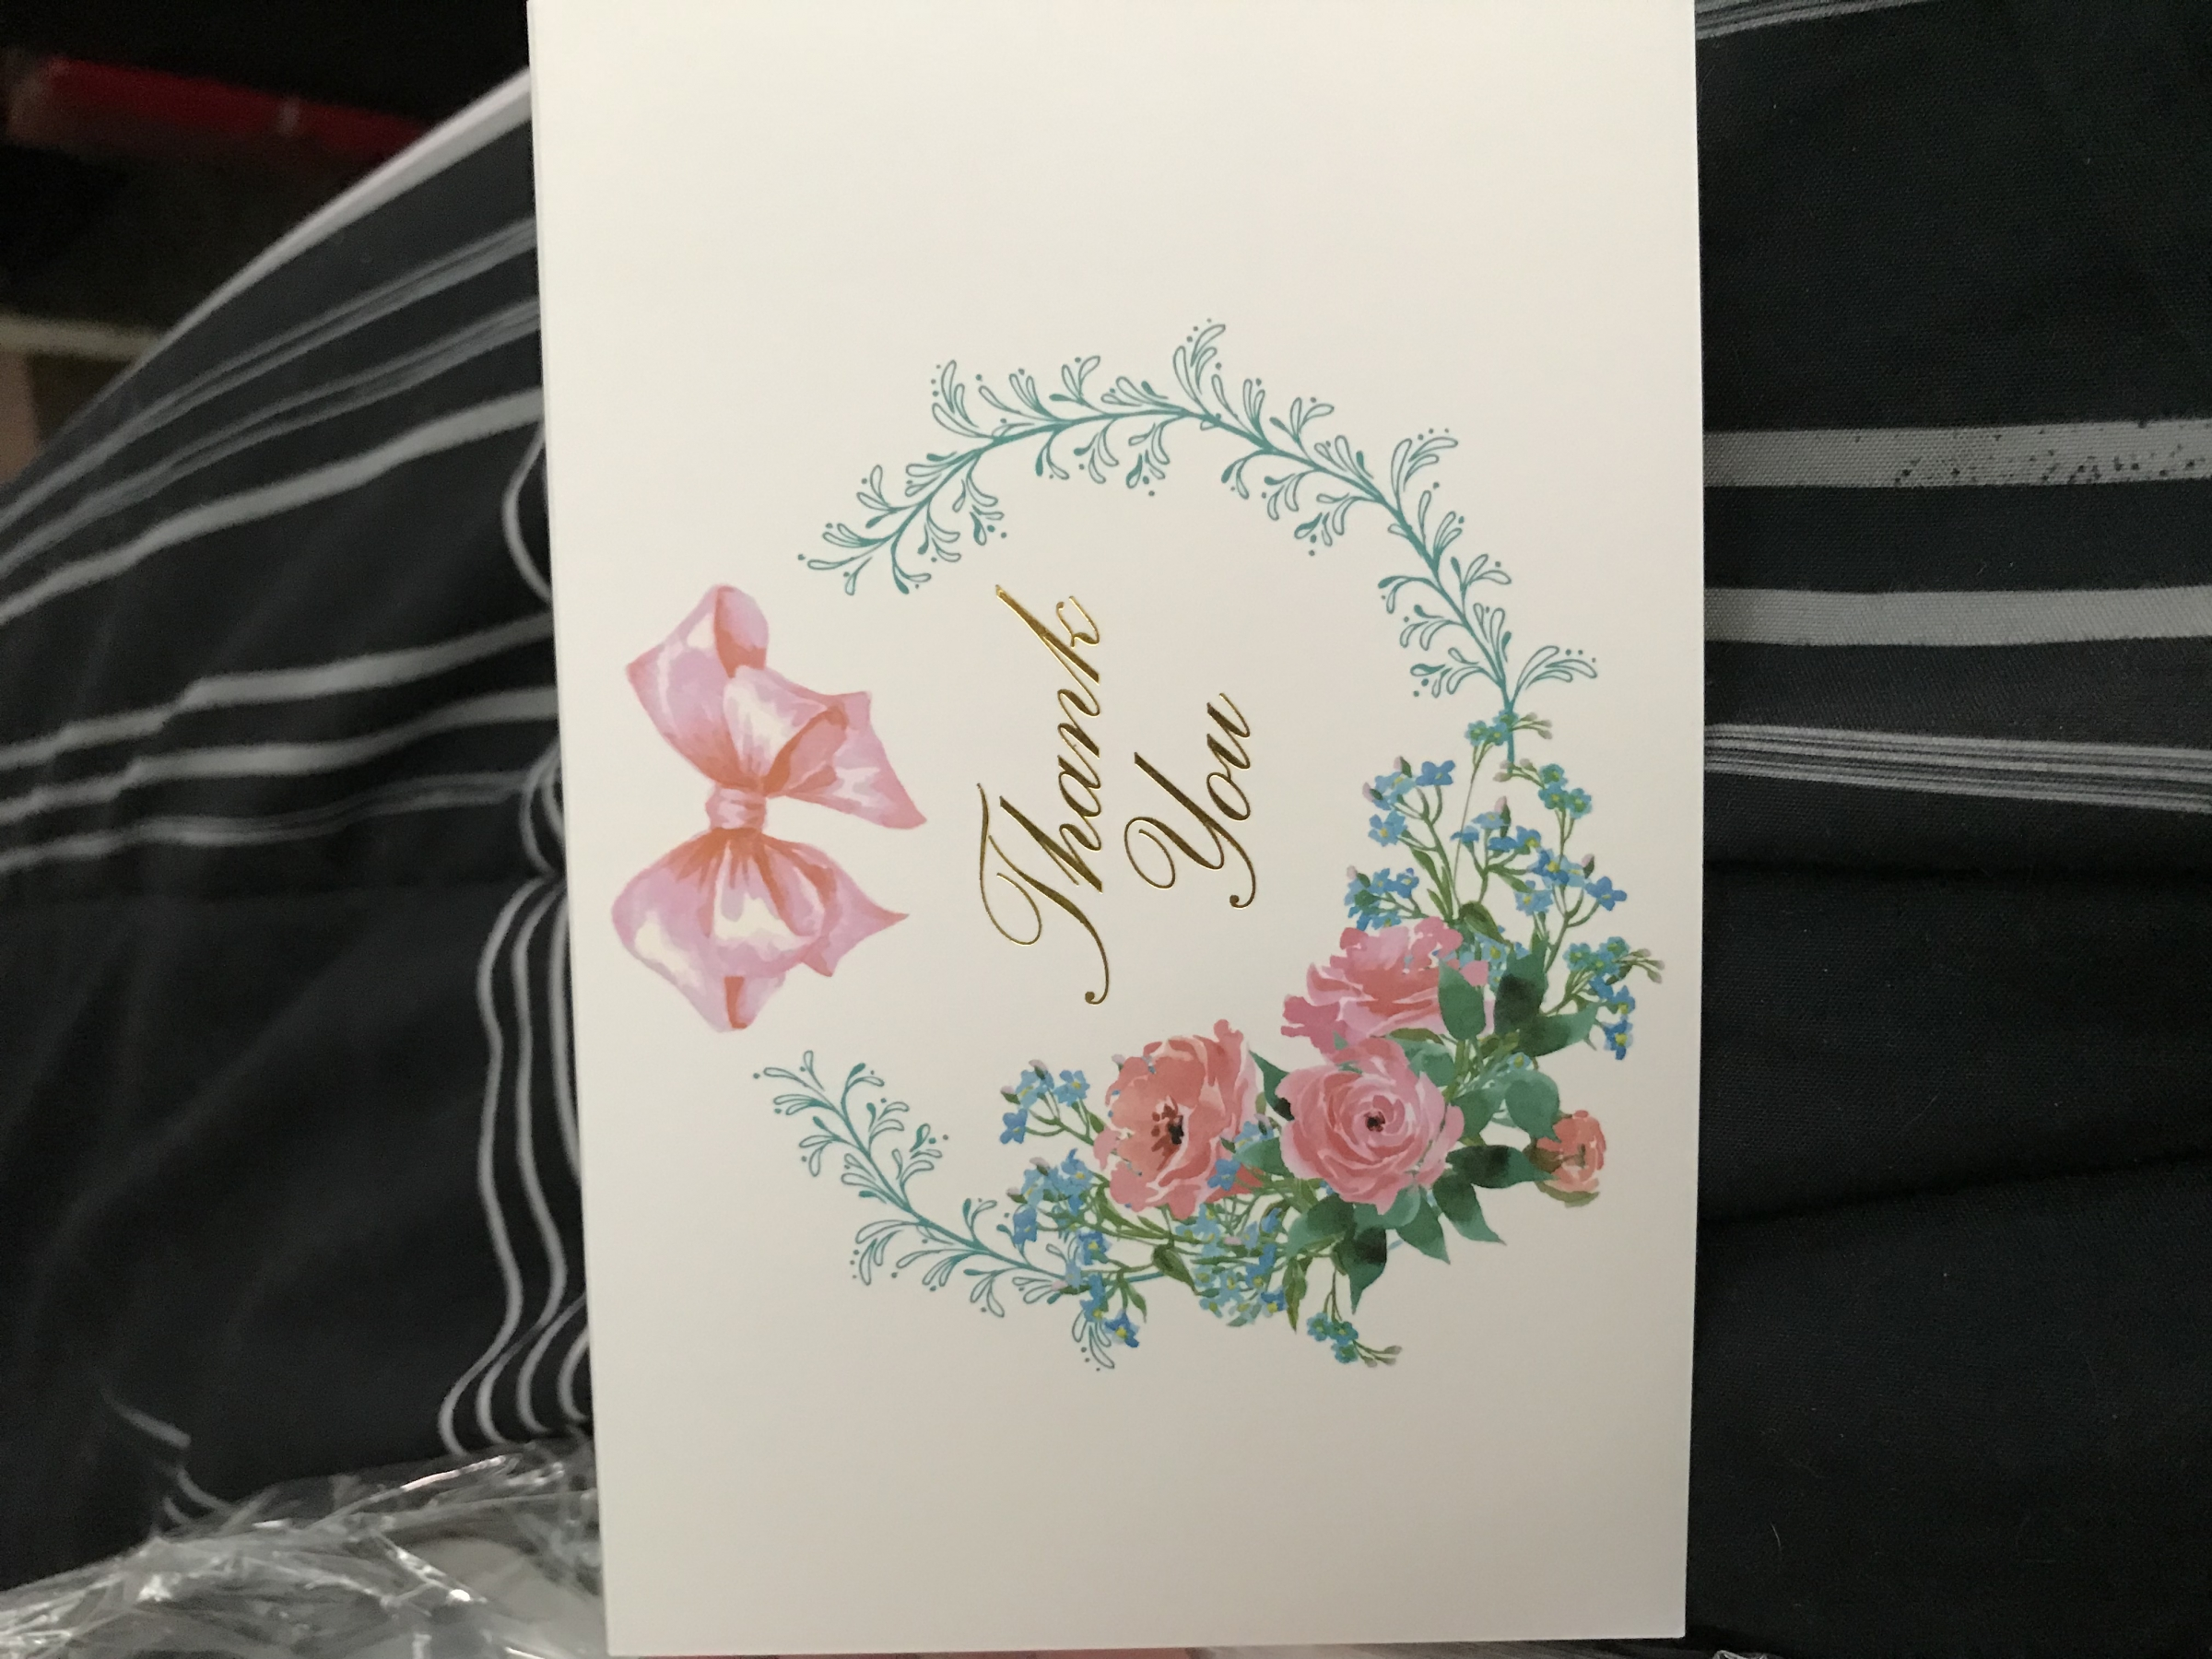 Lovely Thank You cards (blank inside)!